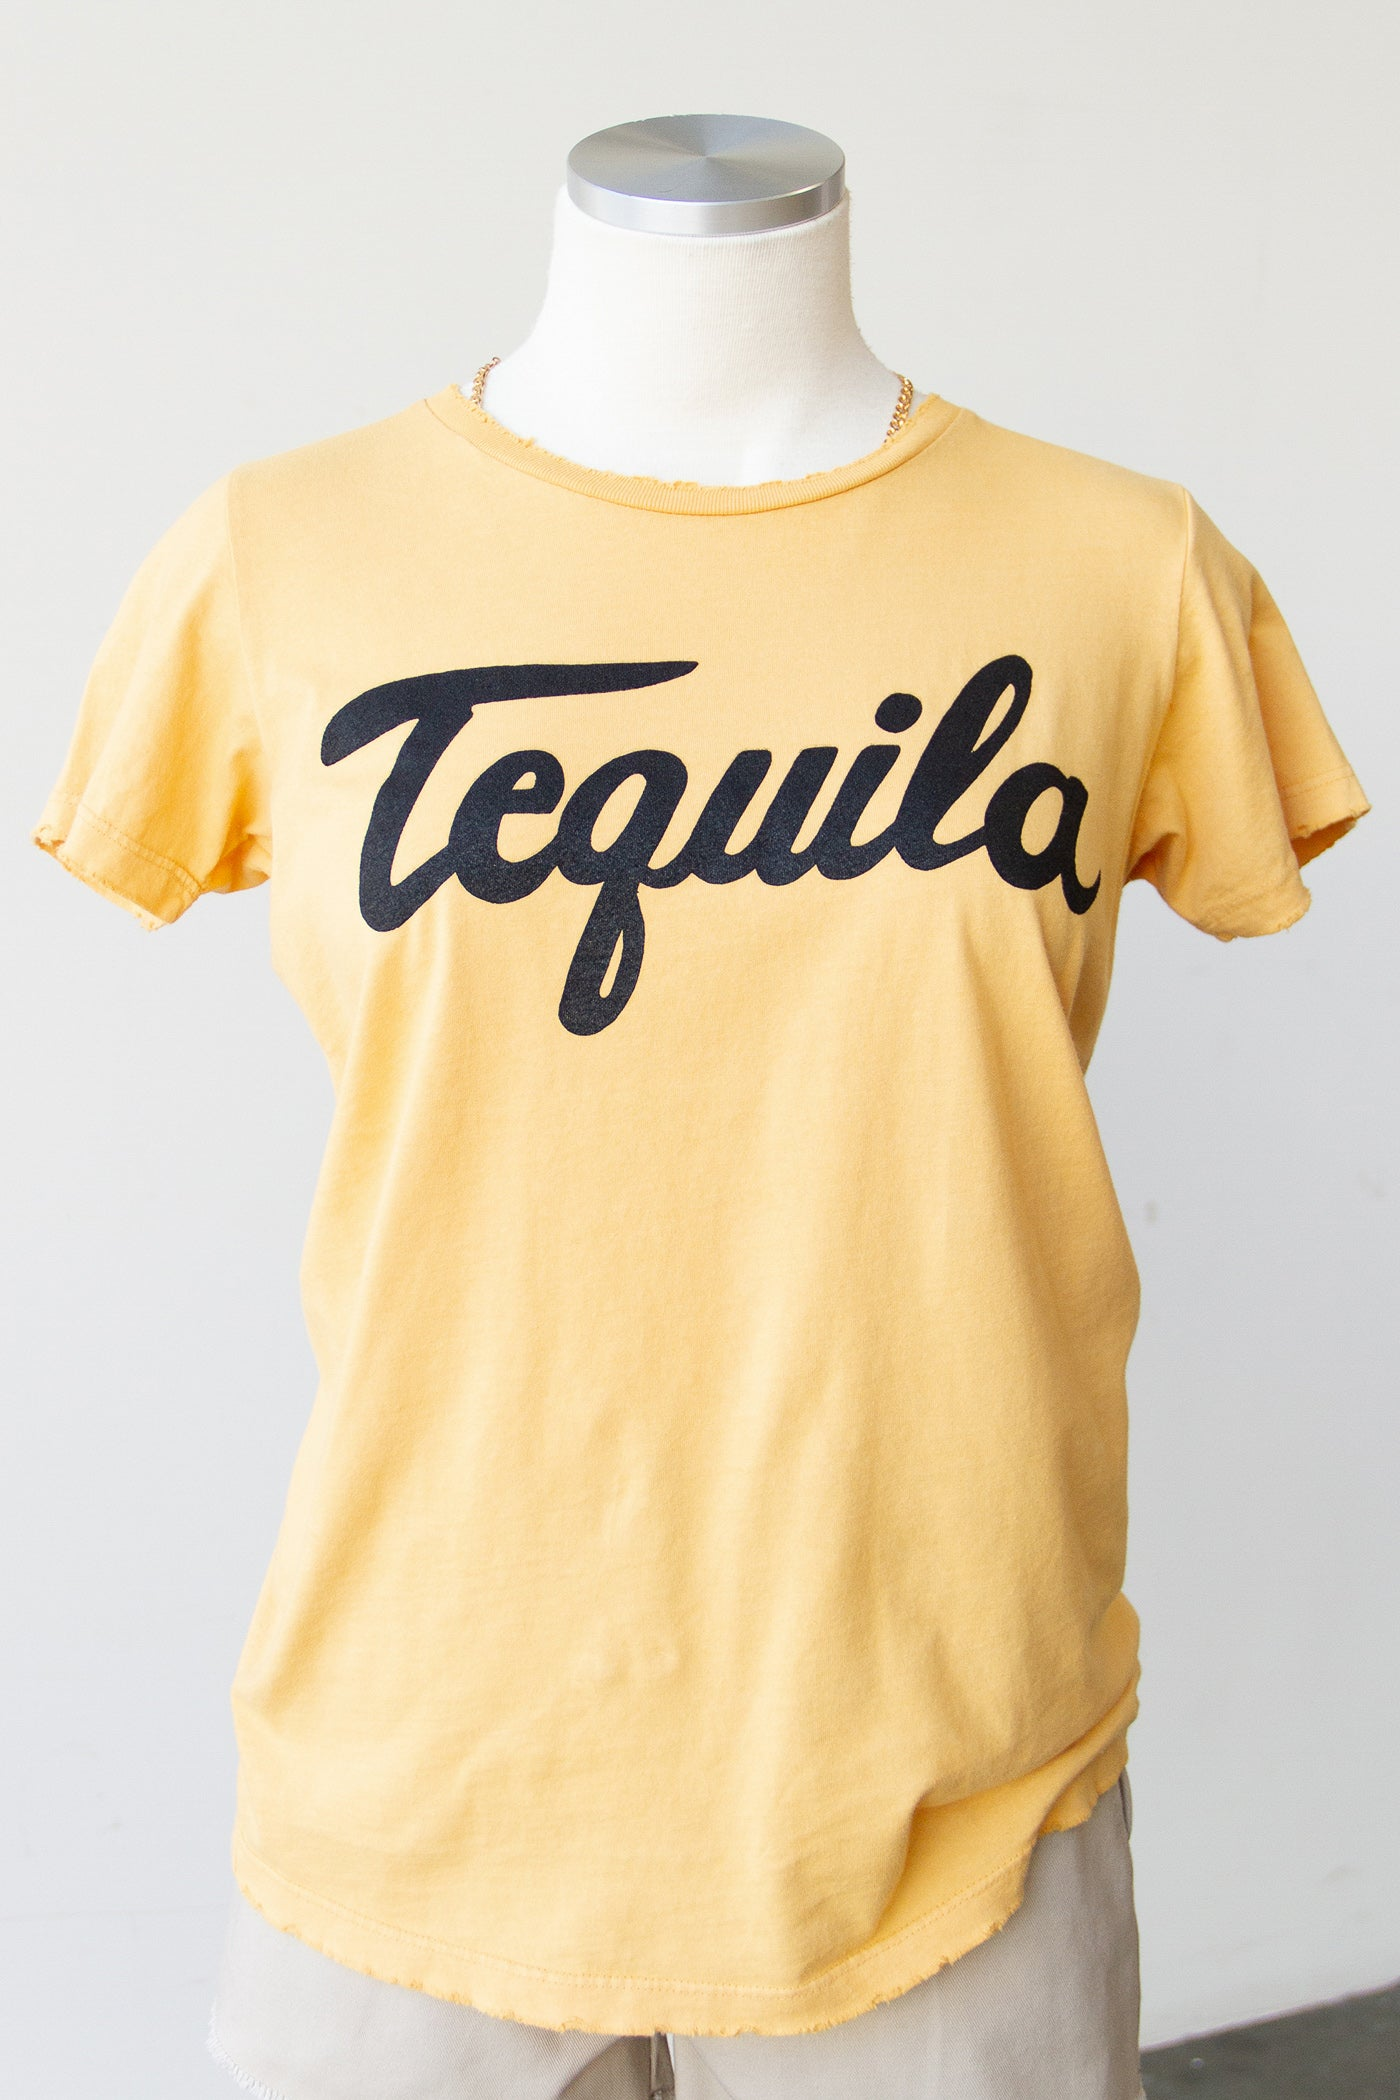 The Tequila Top by Bandit Brand